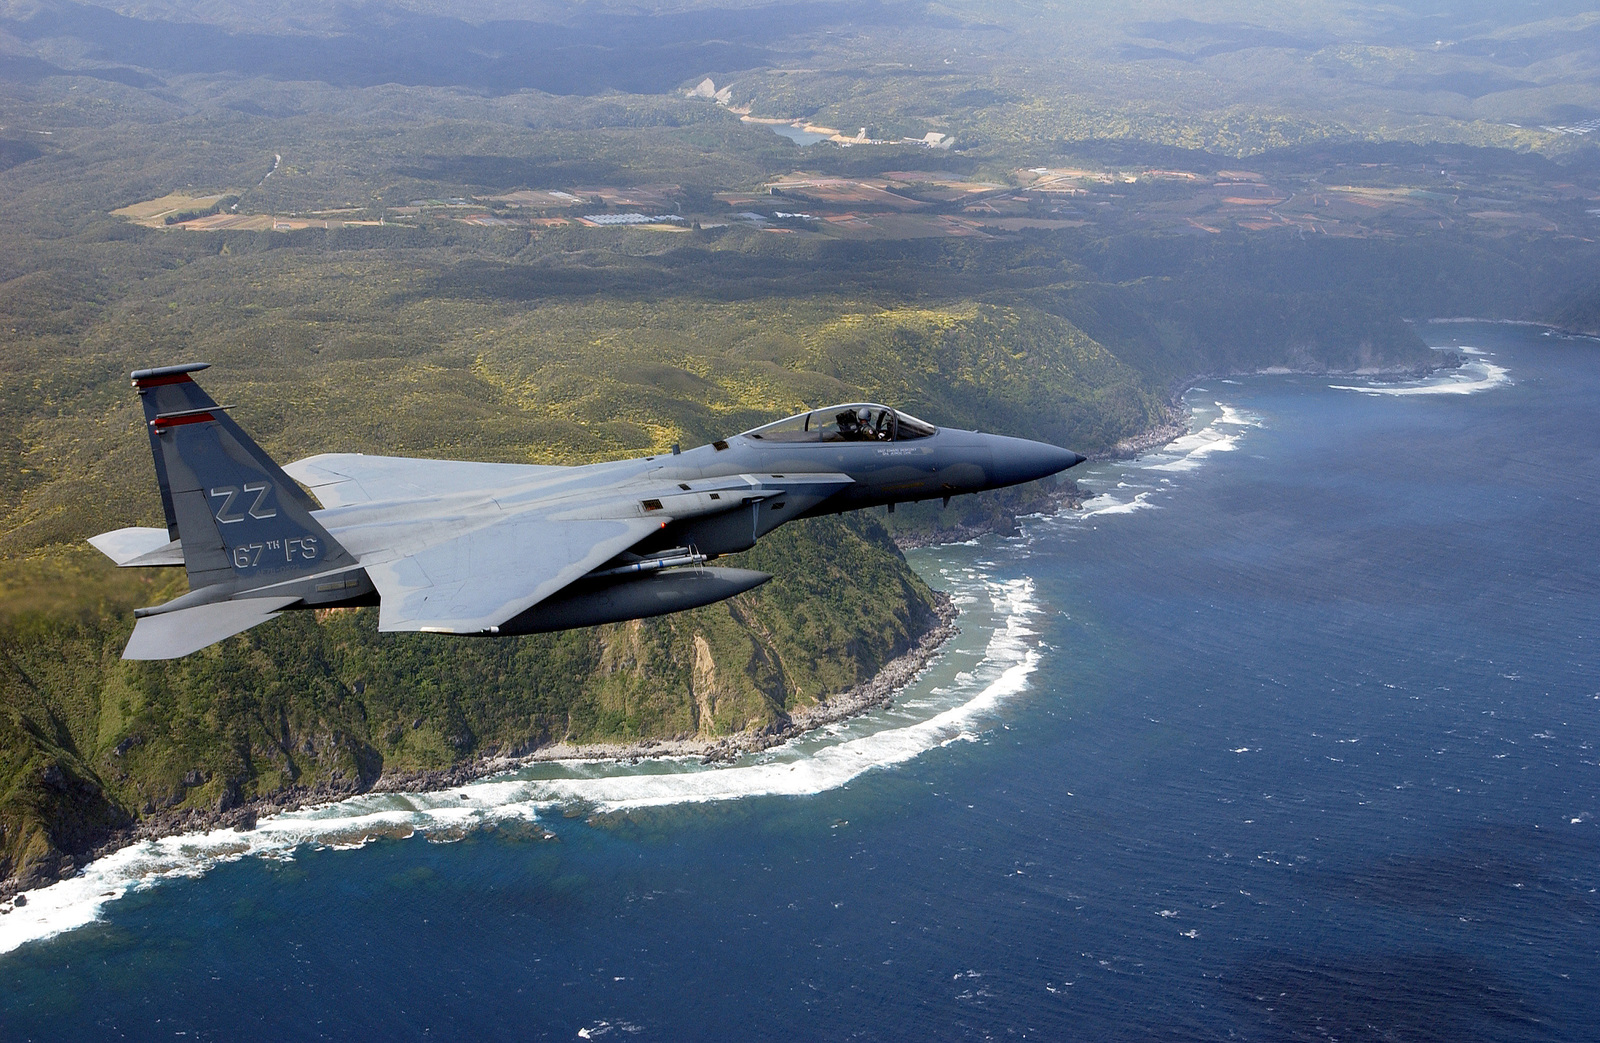 A US Air Force (USAF) F-15C Eagle aircraft piloted by USAF Captain (CPT) Michael Love, 67th Fighter Squadron (FS), 18th Fighter Wing (FW), Kadena Air Base, Japan, flies during a training mission over the Southern coast of Okinawa, Japan